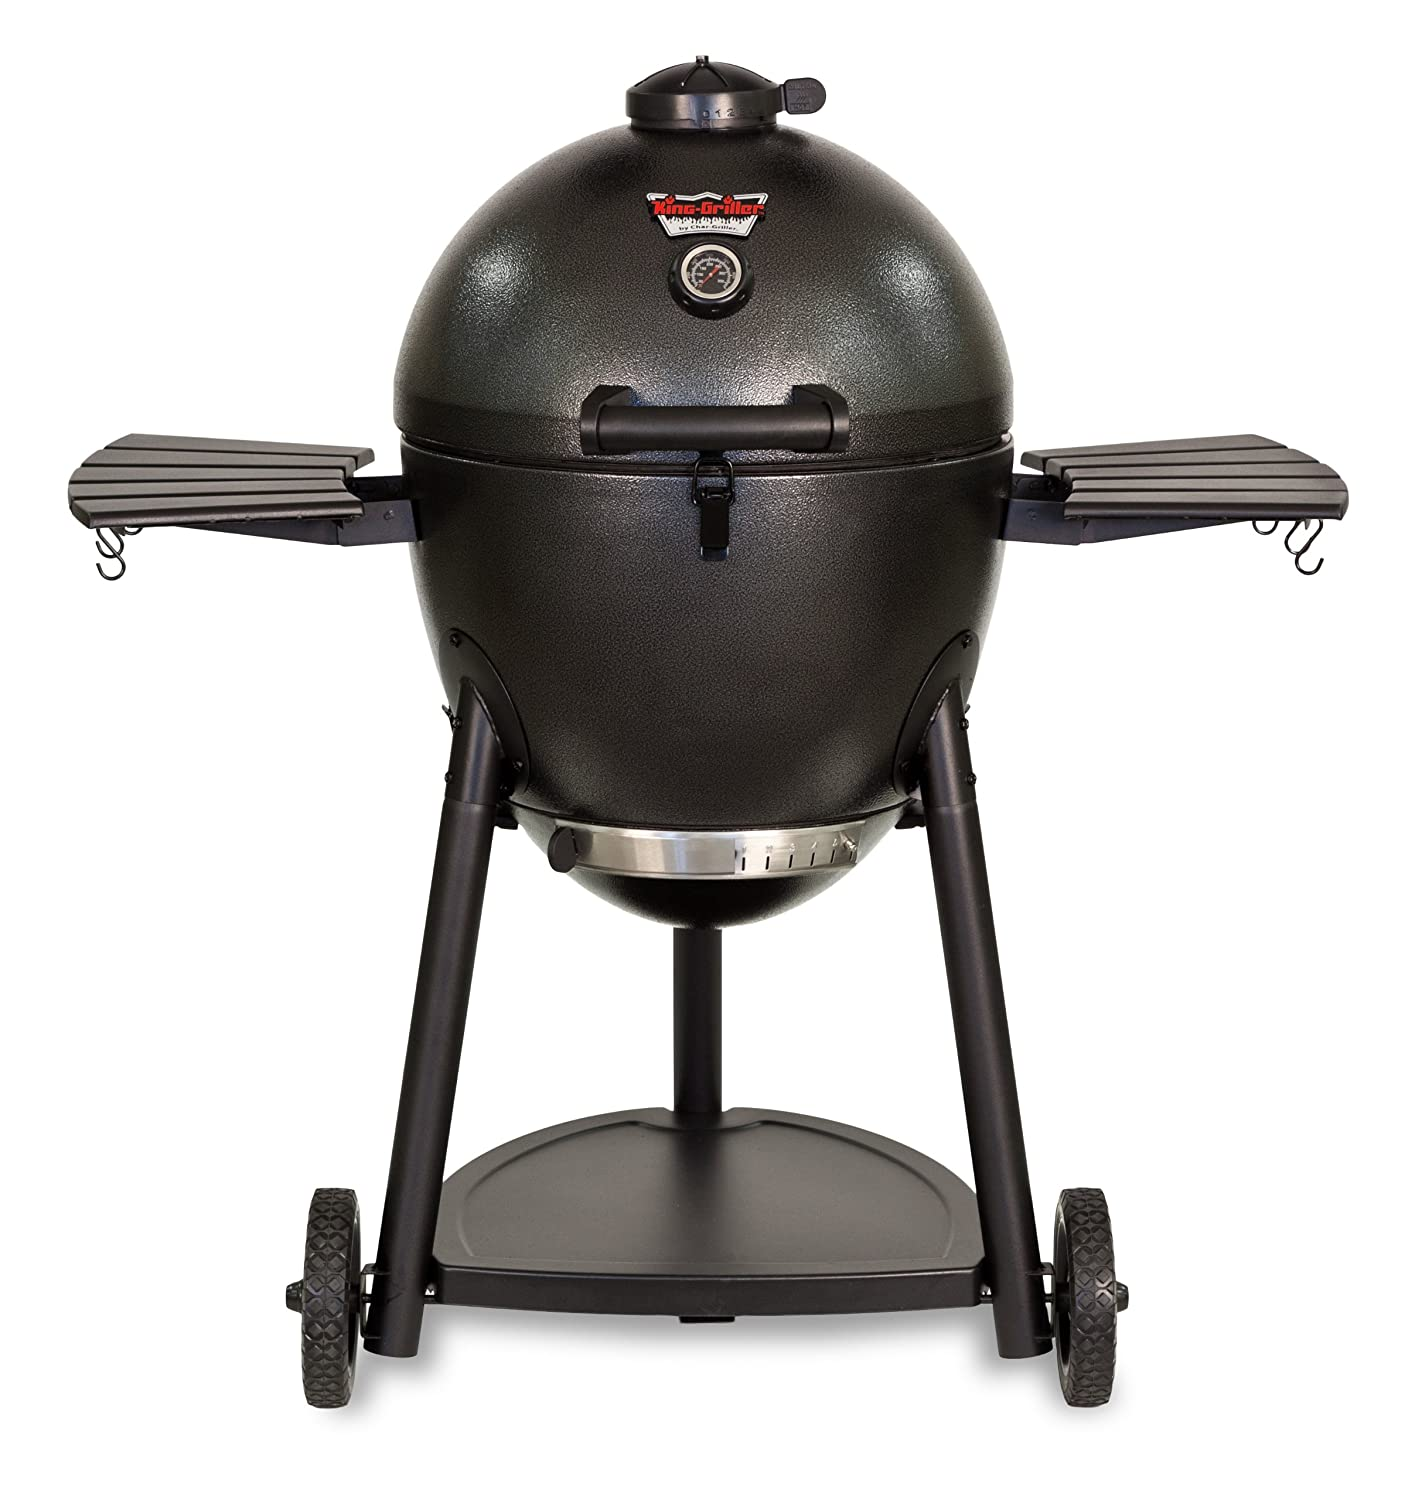 Best Charcoal Grill Reviews - Aorn Kamado Kooker 16620